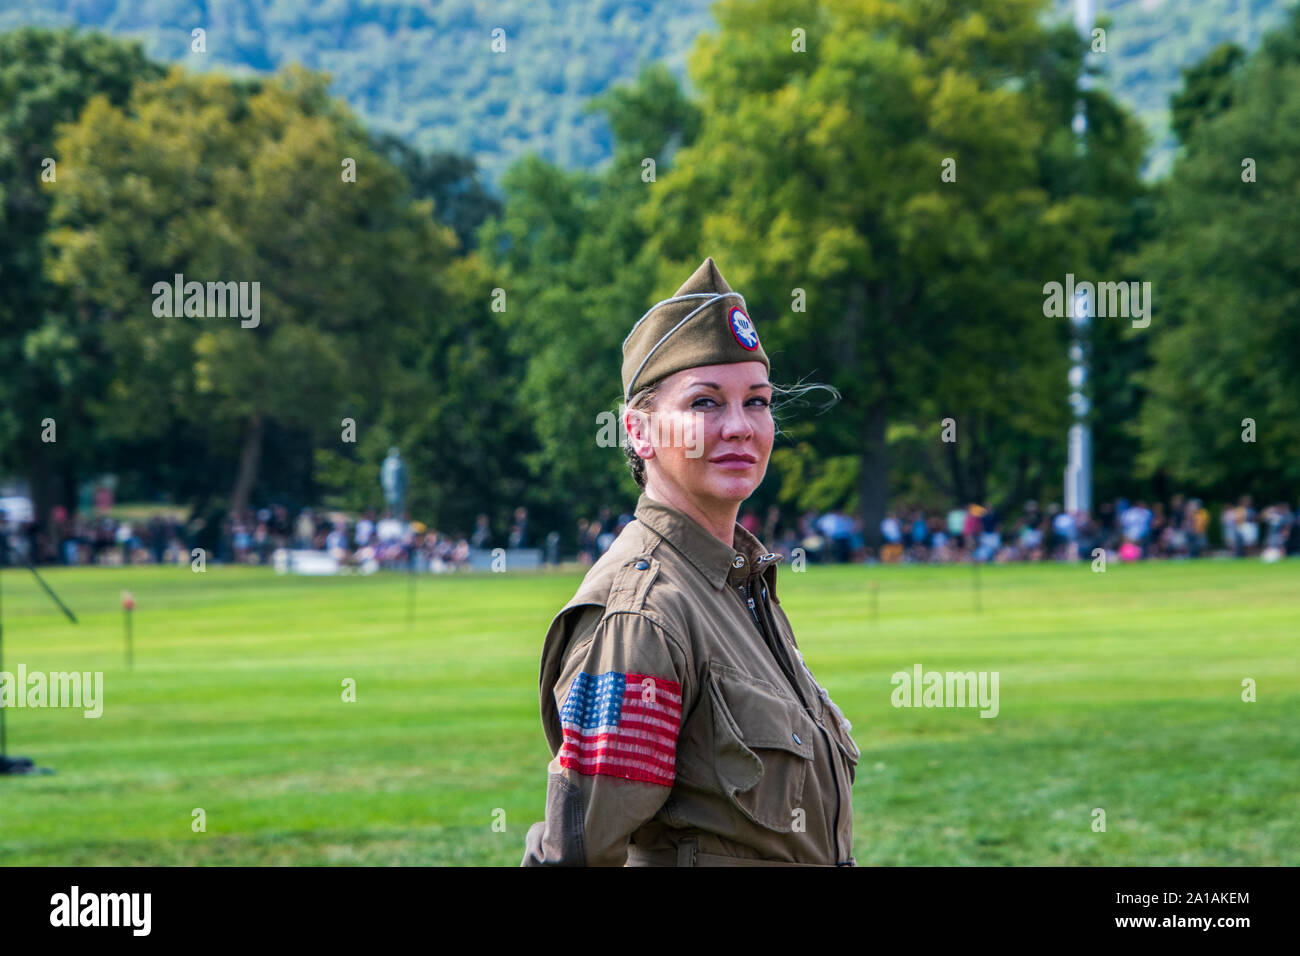 West Point, New York - August 30, 2019: Close up of a pretty young woman in military uniform. There is a grassy field with trees in the background Stock Photo